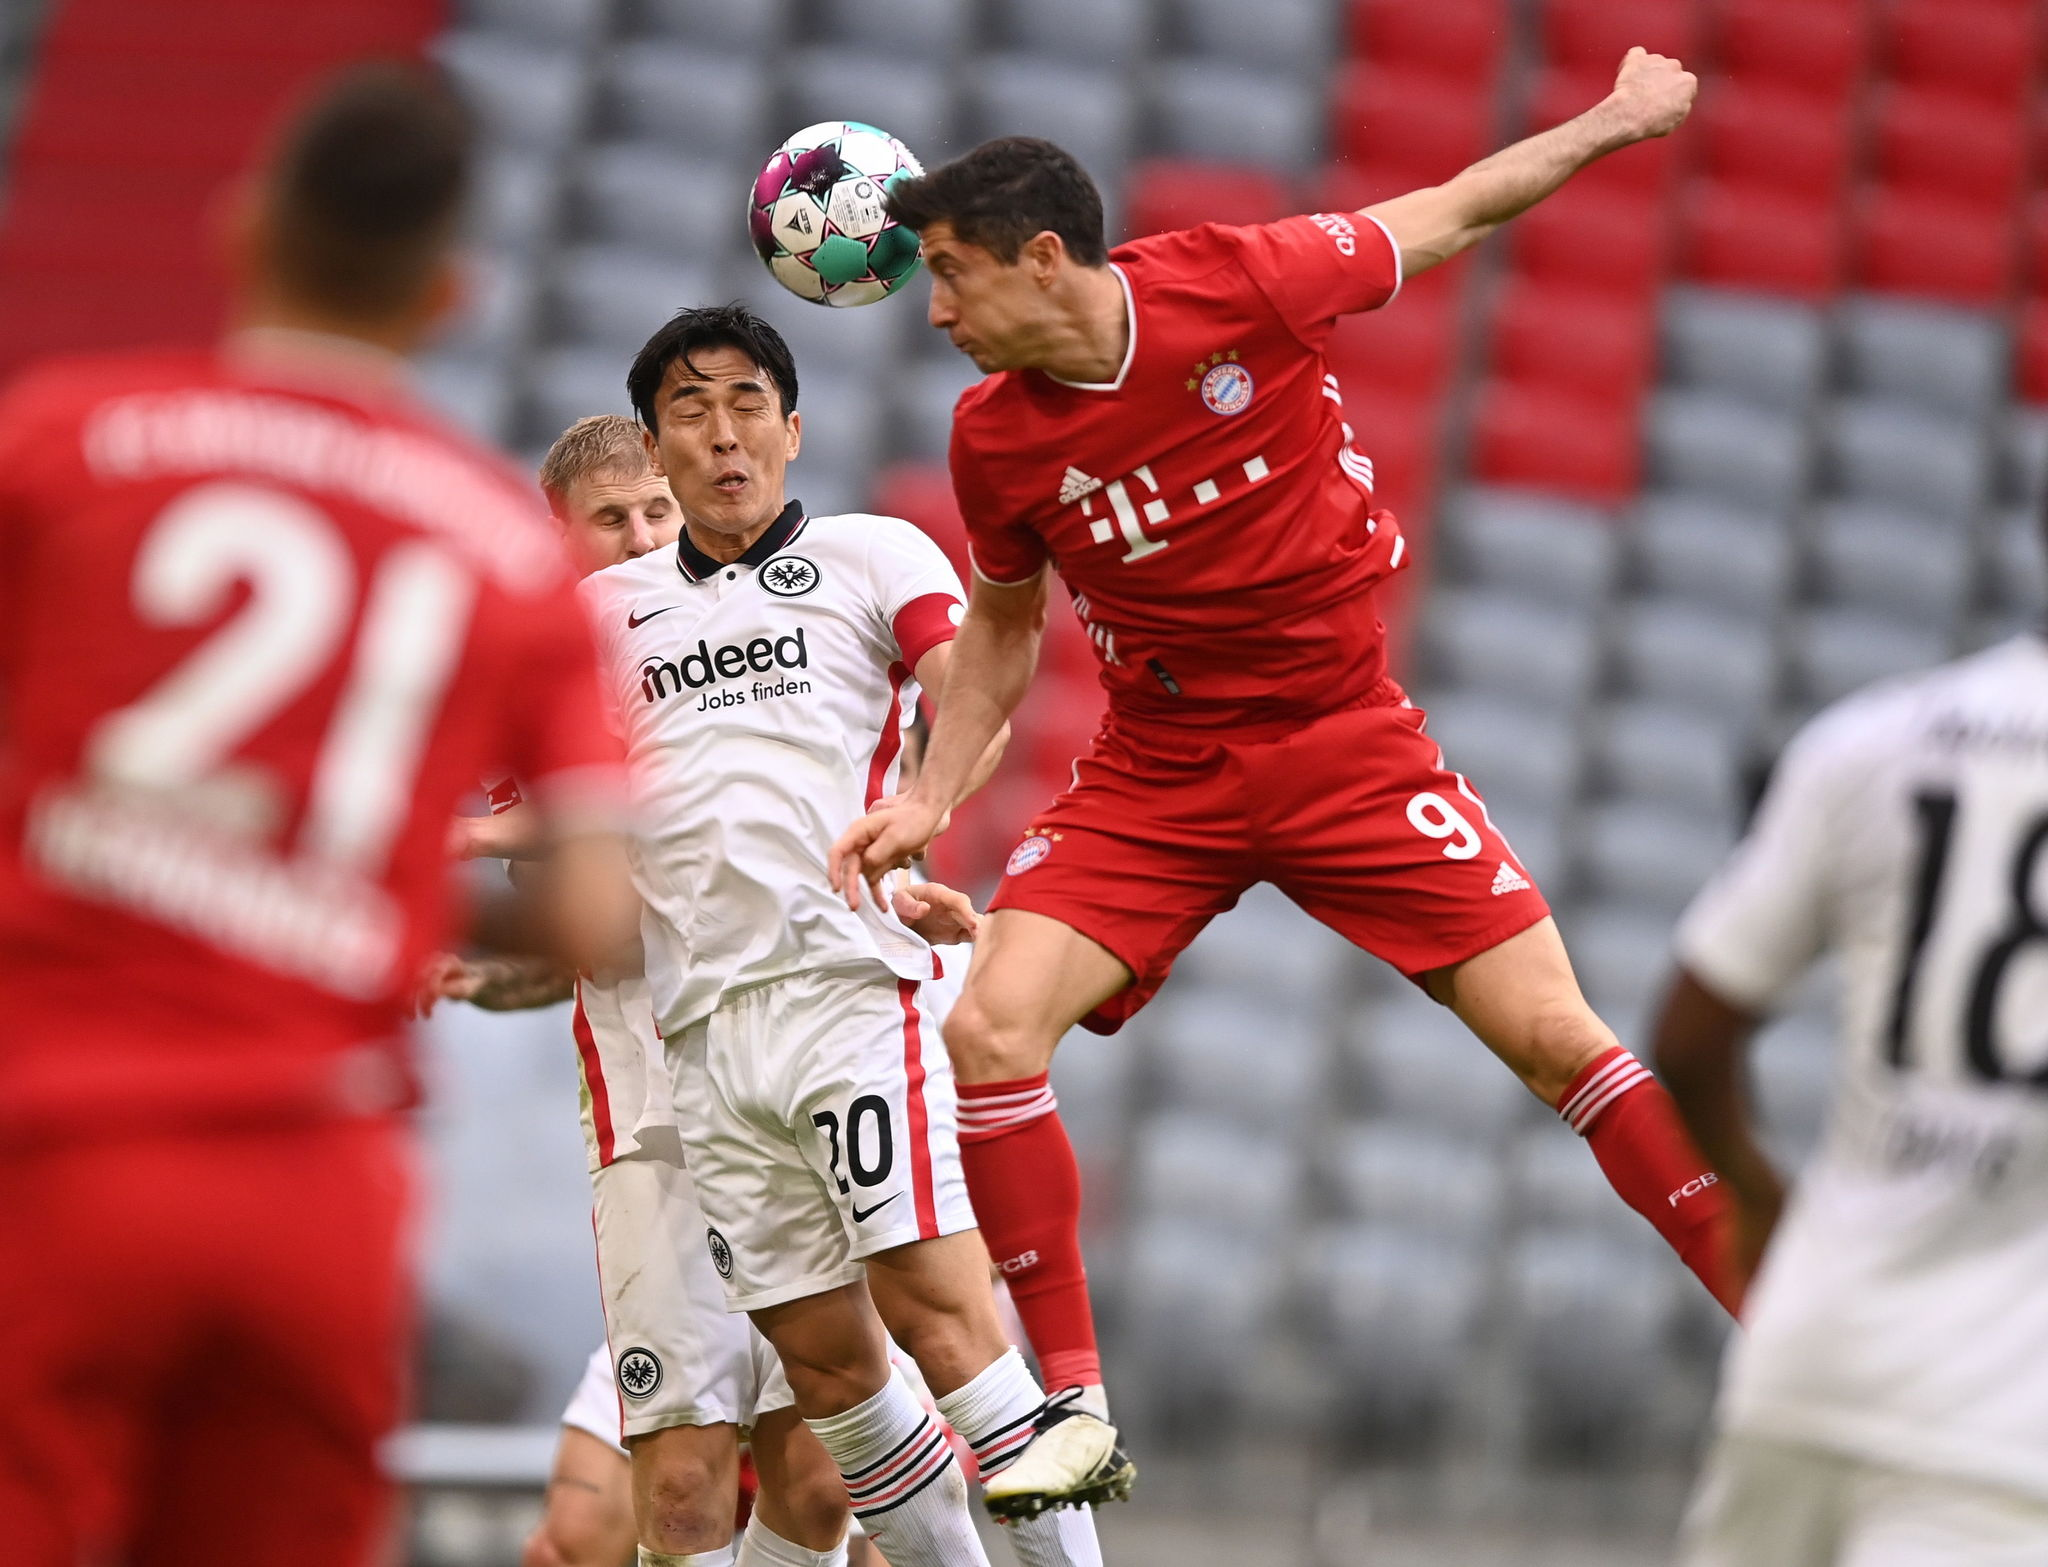 Munich (Germany), 24/10/2020.- Frankfurts Makoto Hasebe (L) in action against Bayerns Robert lt;HIT gt;Lewandowski lt;/HIT gt; (R) during the German Bundesliga soccer match between FC Bayern Munich and Eintracht Frankfurt, in Munich, Germany, 24 October 2020. (Alemania) EFE/EPA/LUKAS BARTH / POOL CONDITIONS - ATTENTION: The DFL regulations prohibit any use of photographs as image sequences and/or quasi-video